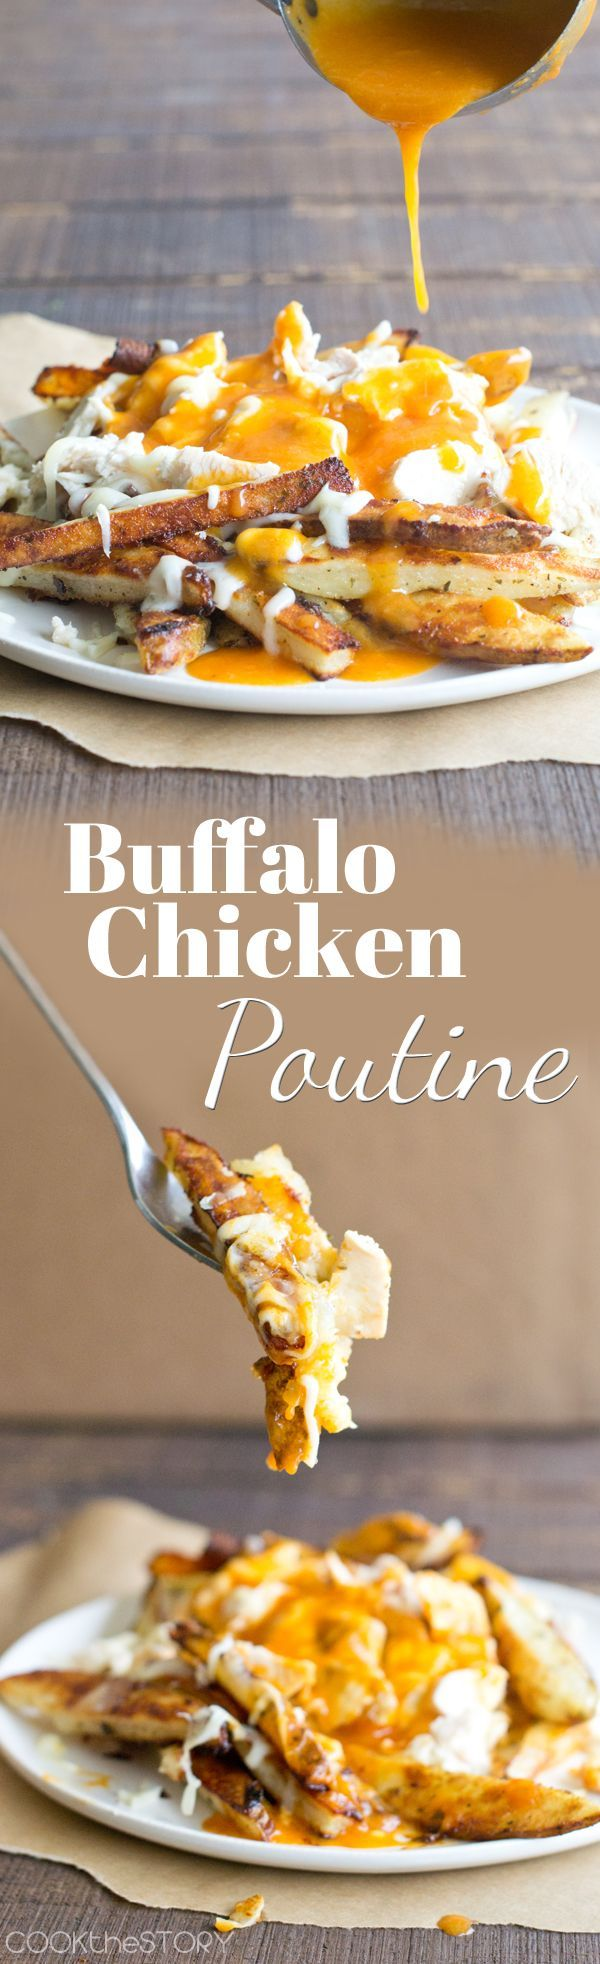 Buffalo Chicken Poutine (9 Better Than The Burger Unique French Fry Recipes)- Ranch seasoning French fries with a delicious  beer butter and wing sauce gravy that is to die for!